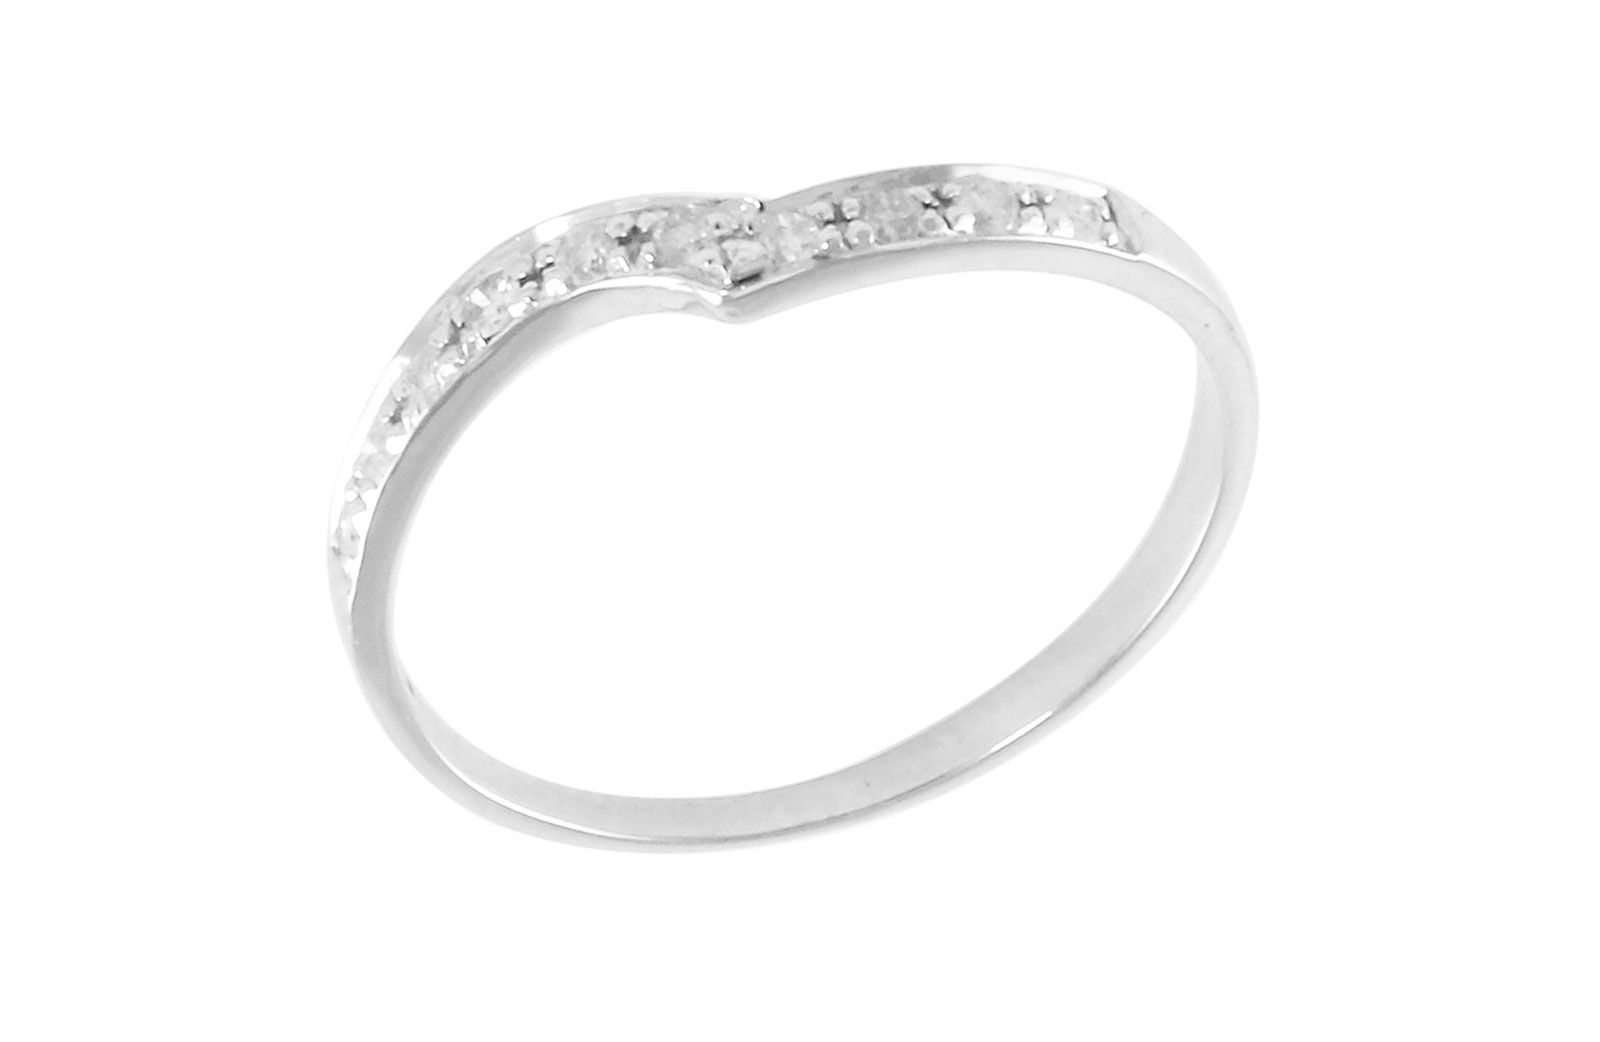 Vera Perla  18K White Gold 0.10Cts Genuine Diamonds Twisted Eternity Band Ring